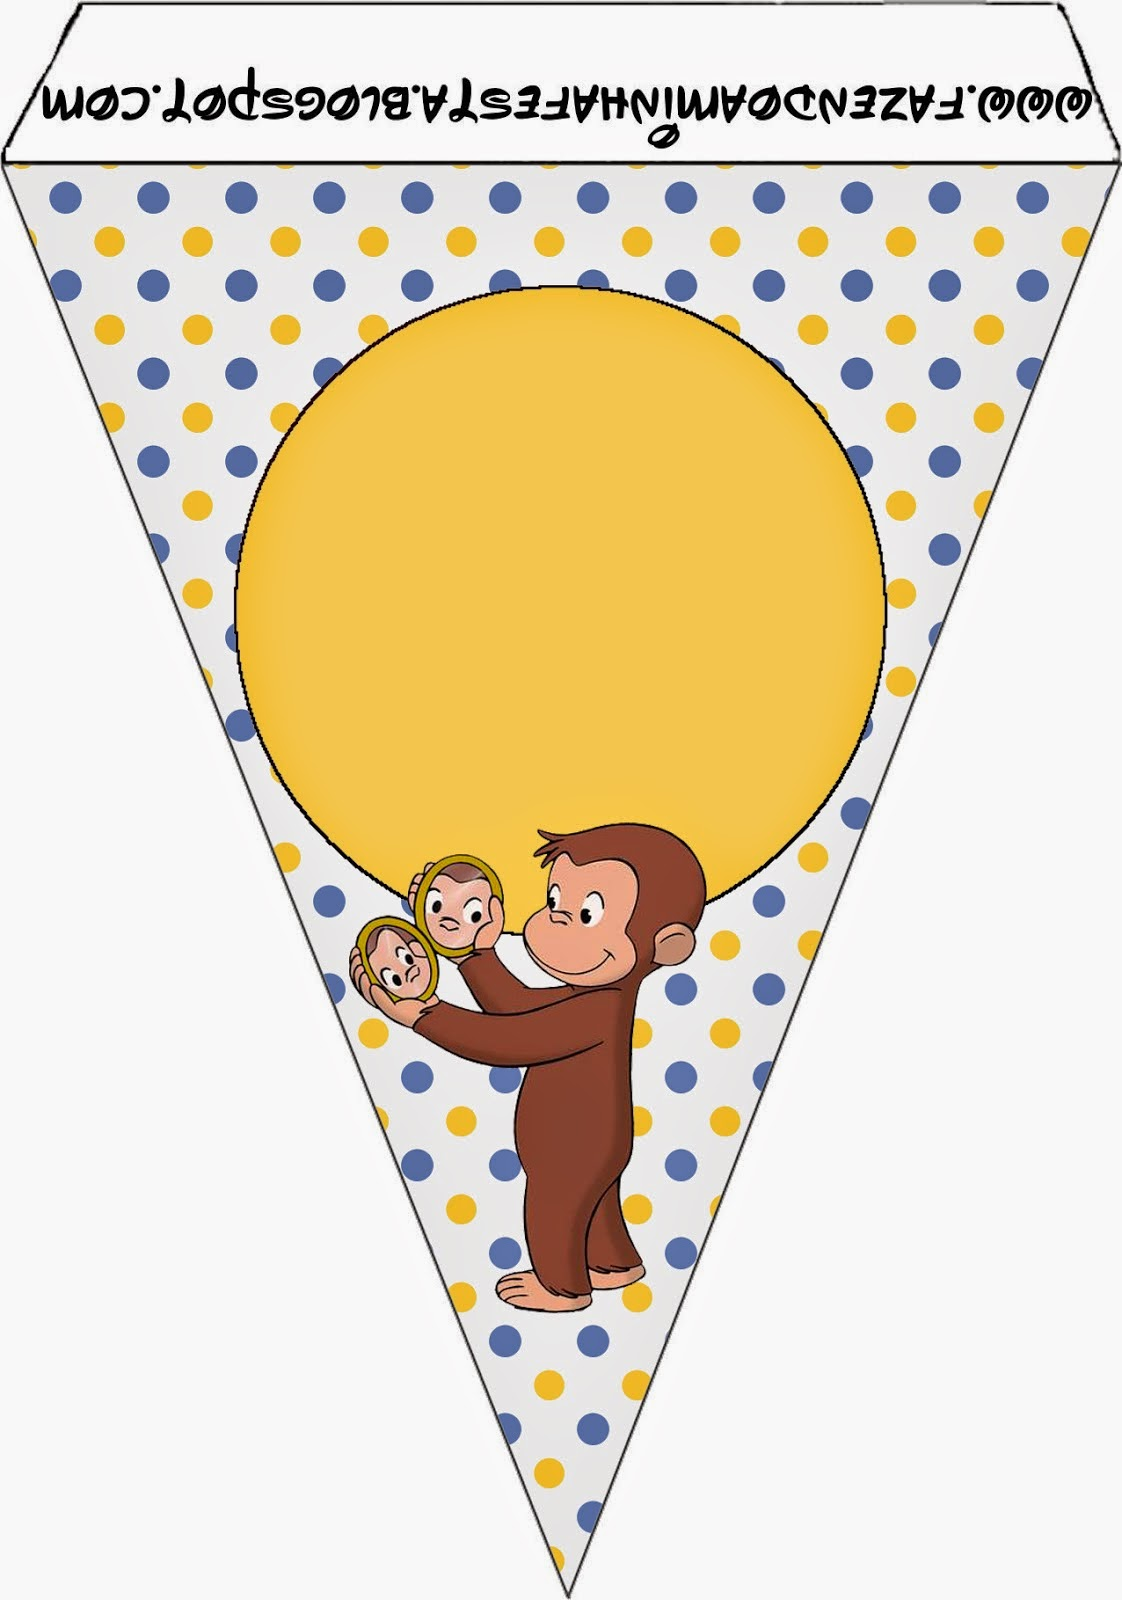 graphic about Curious George Printable identified as Curious George Free of charge Social gathering Printables. - Oh My Fiesta! inside of english